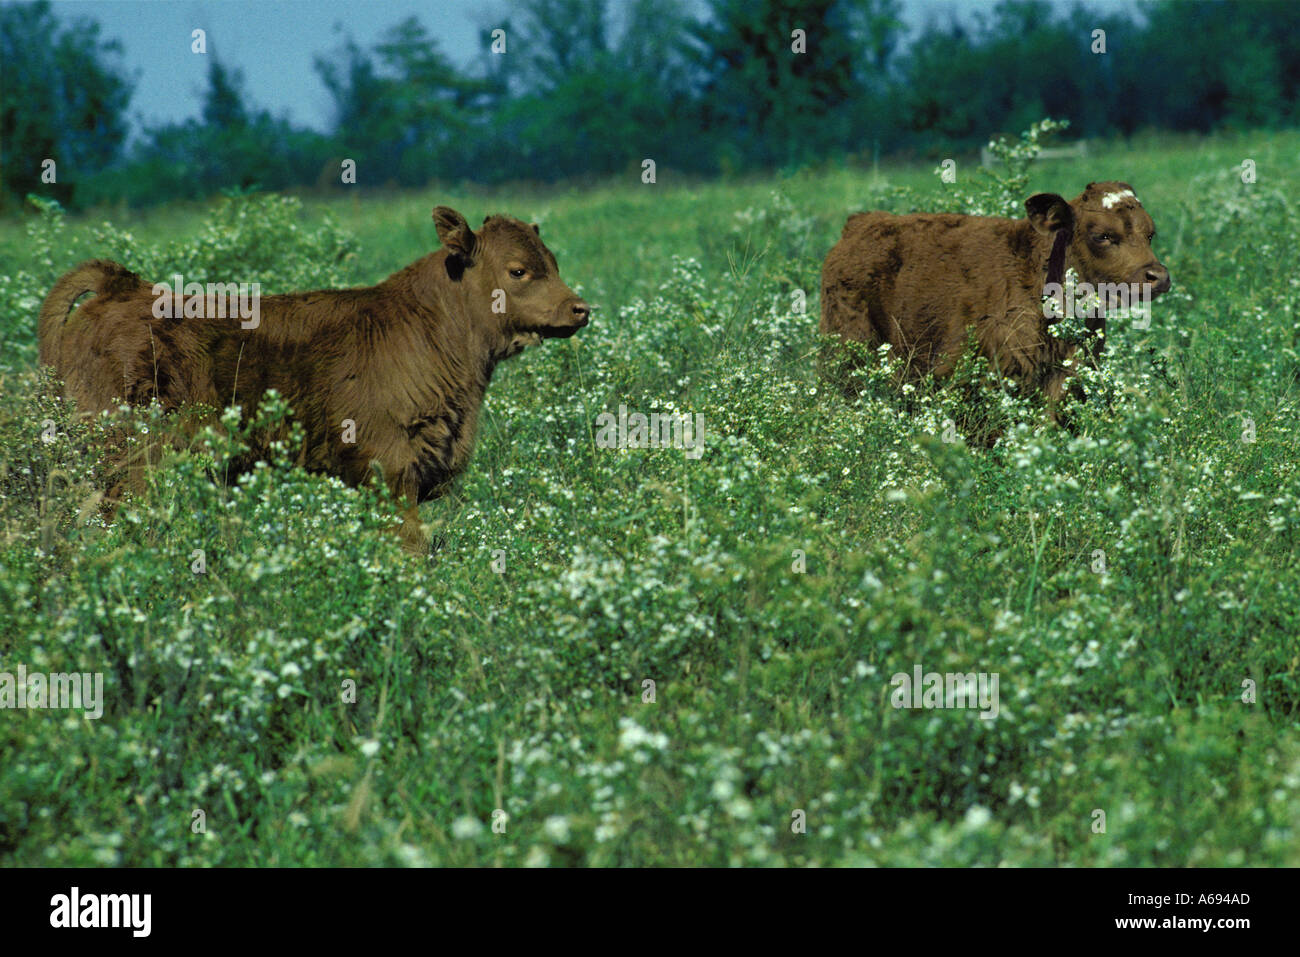 Two calves in pasture with wild asters, Missouri USA - Stock Image